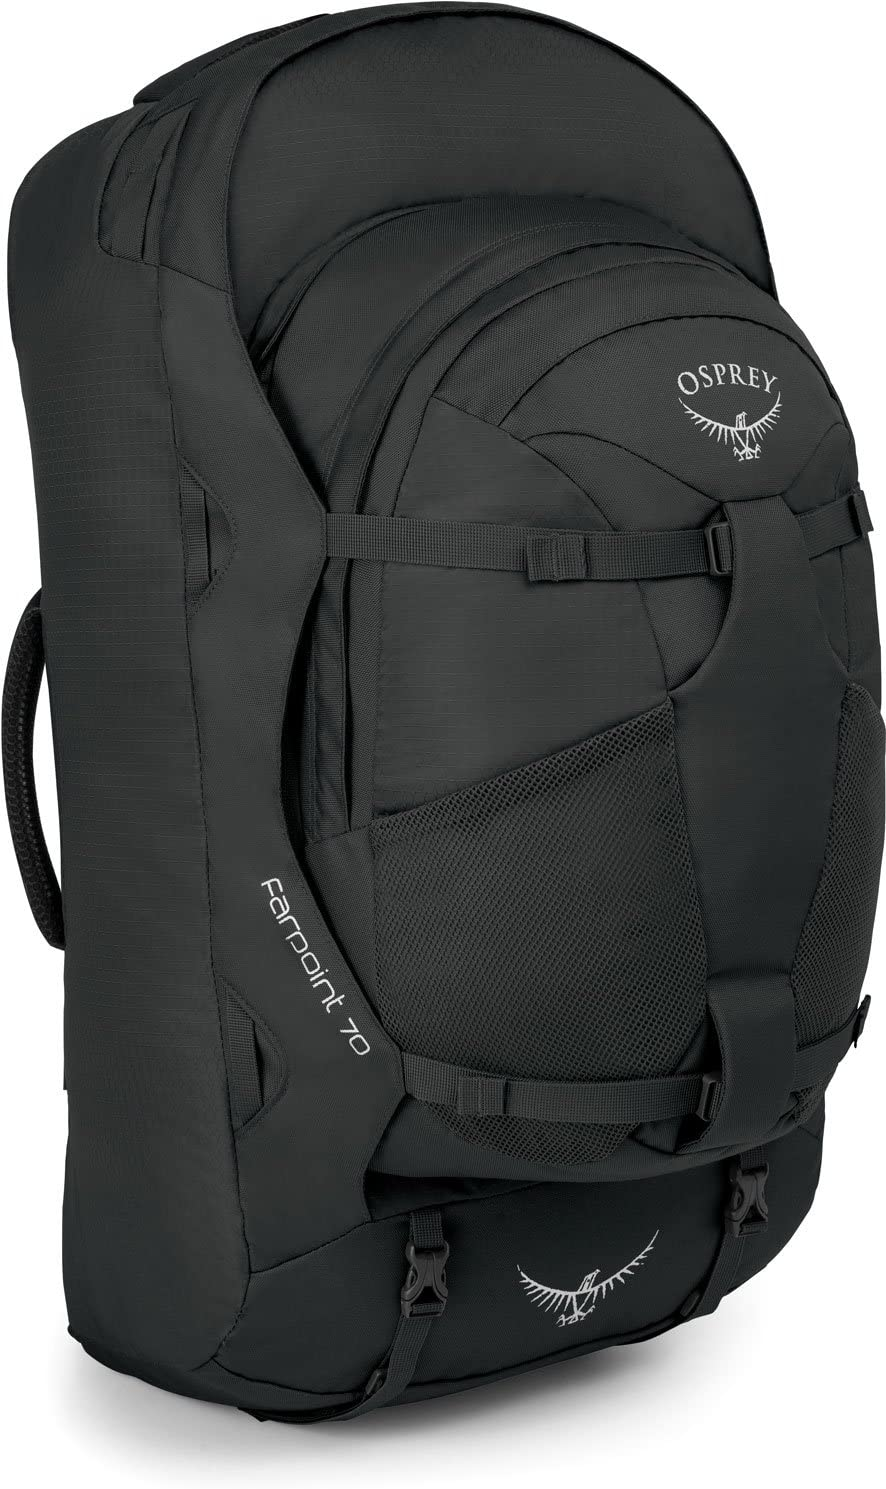 Osprey Farpoint 70 Mens Travel Pack with 13L Detachable Daypack